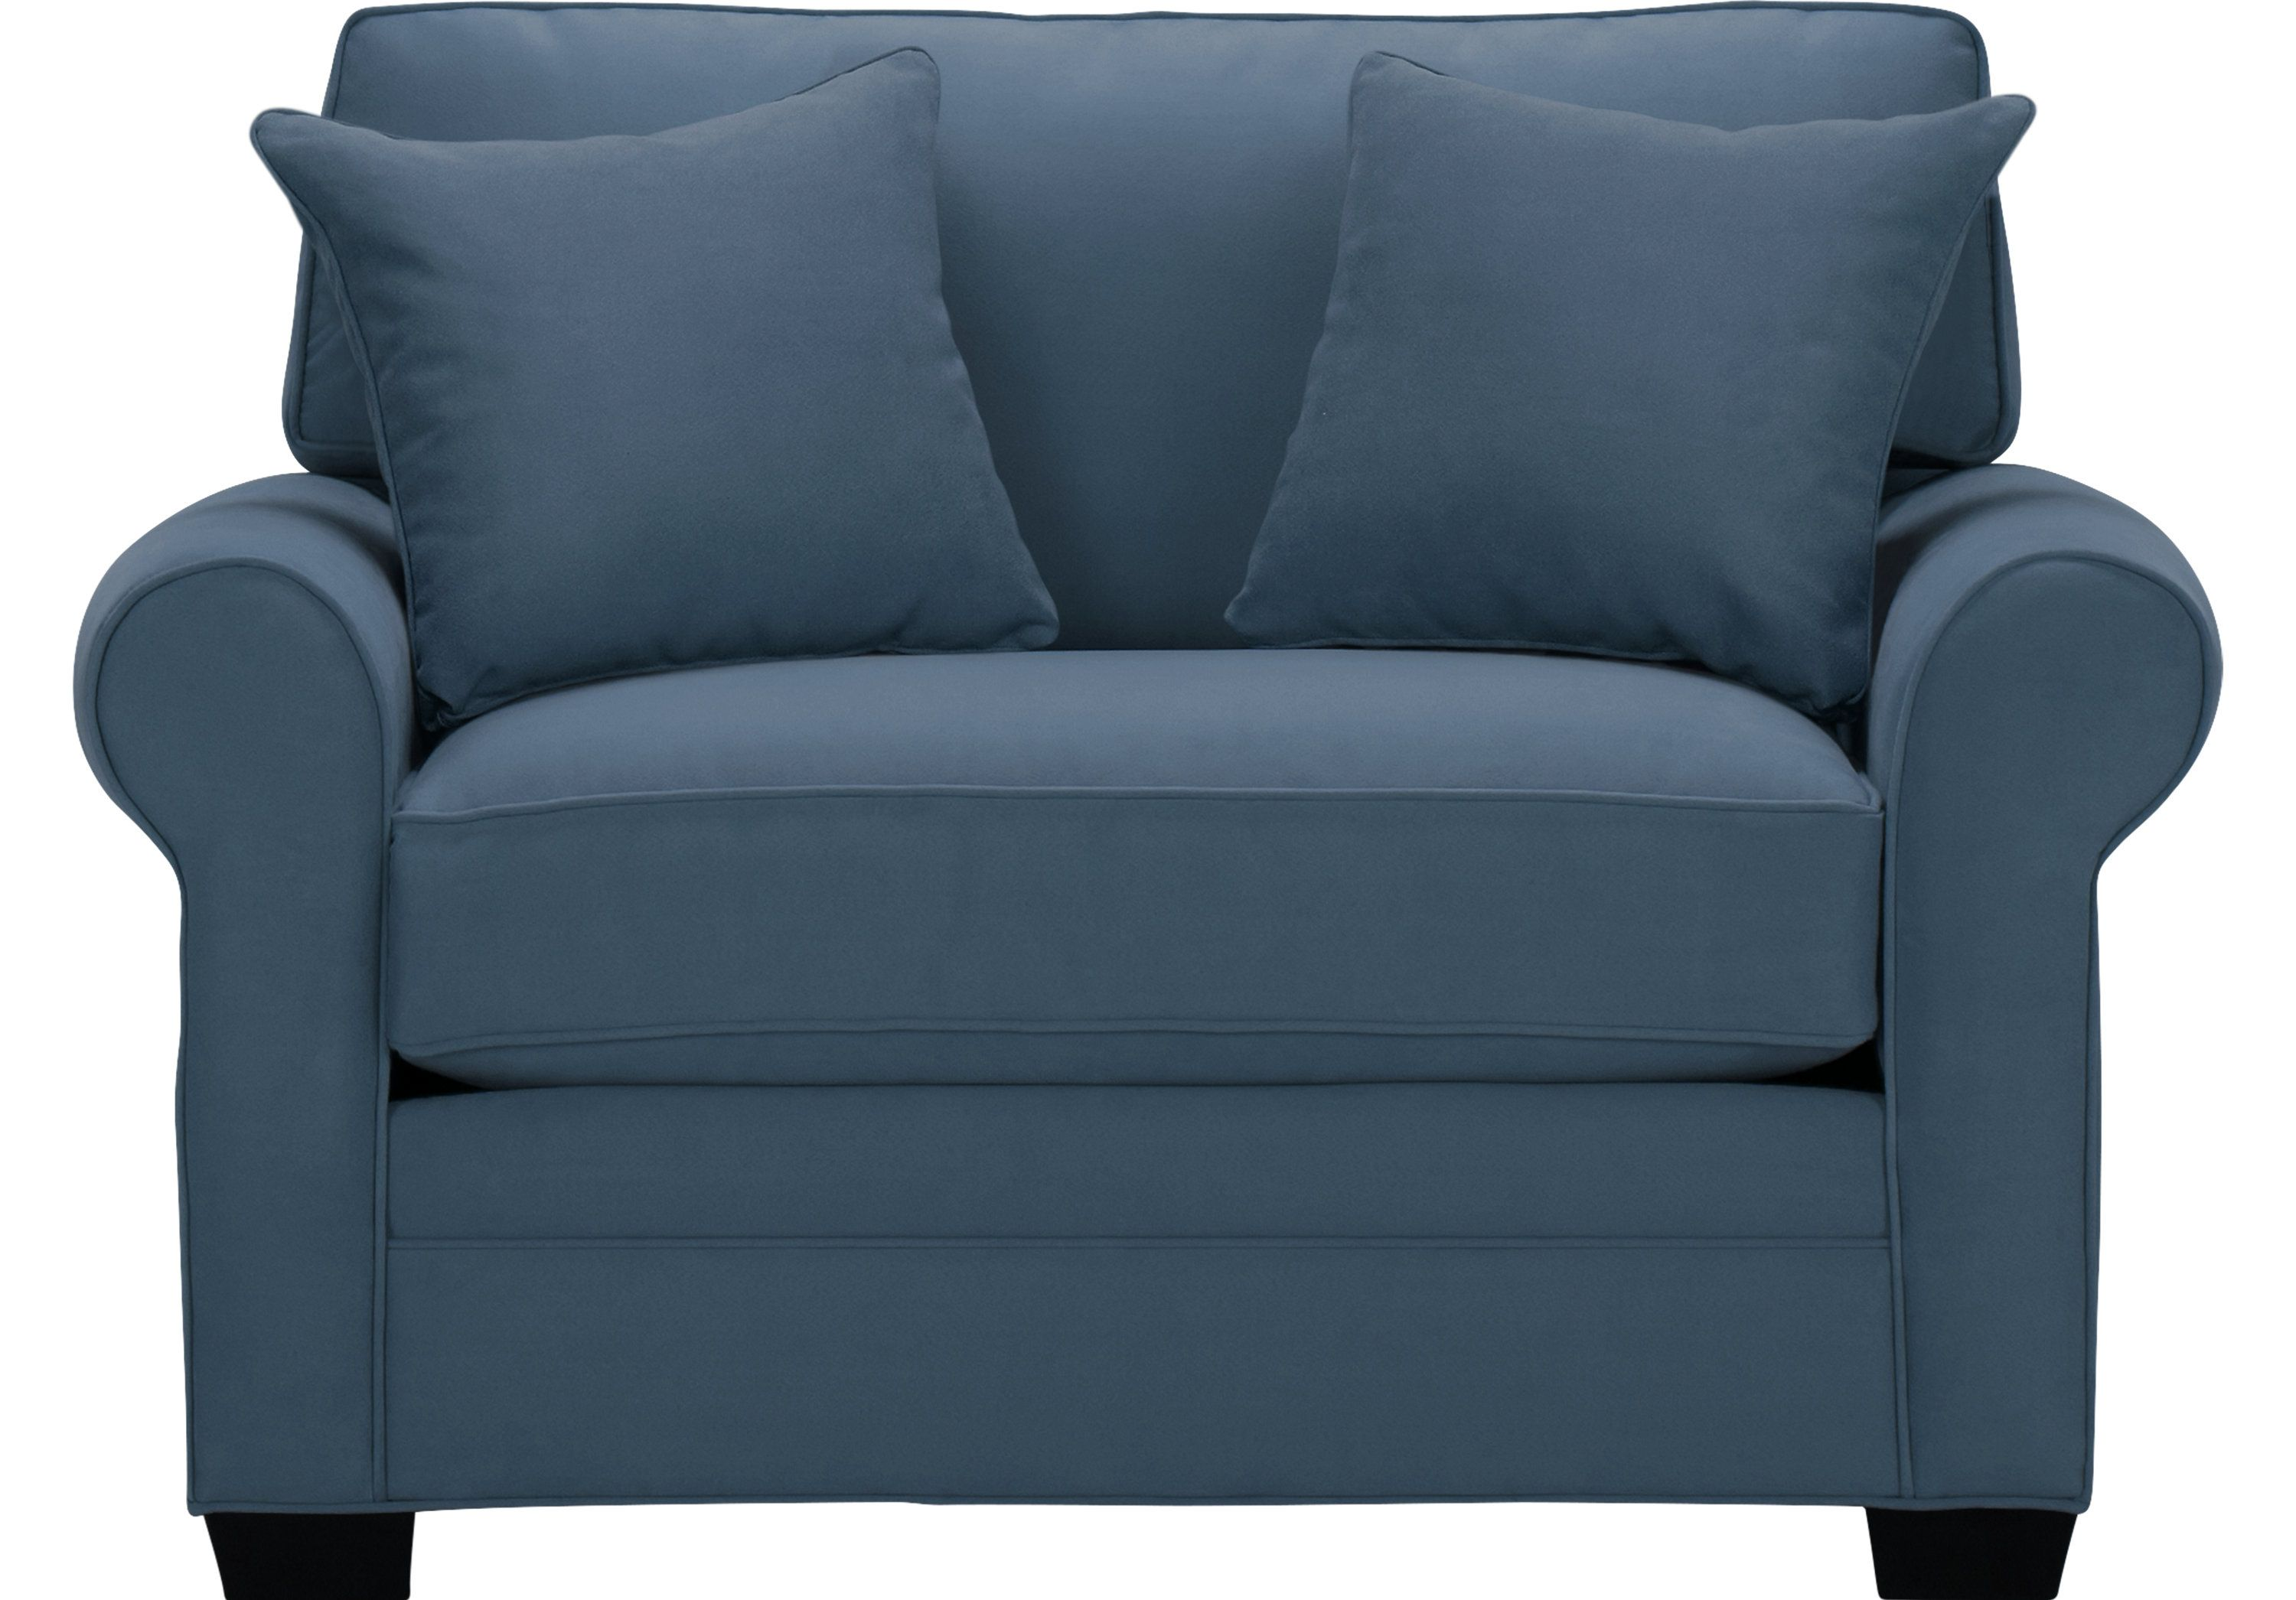 Cindy Crawford Home Bellingham Indigo Sleeper Chair Chairs Blue